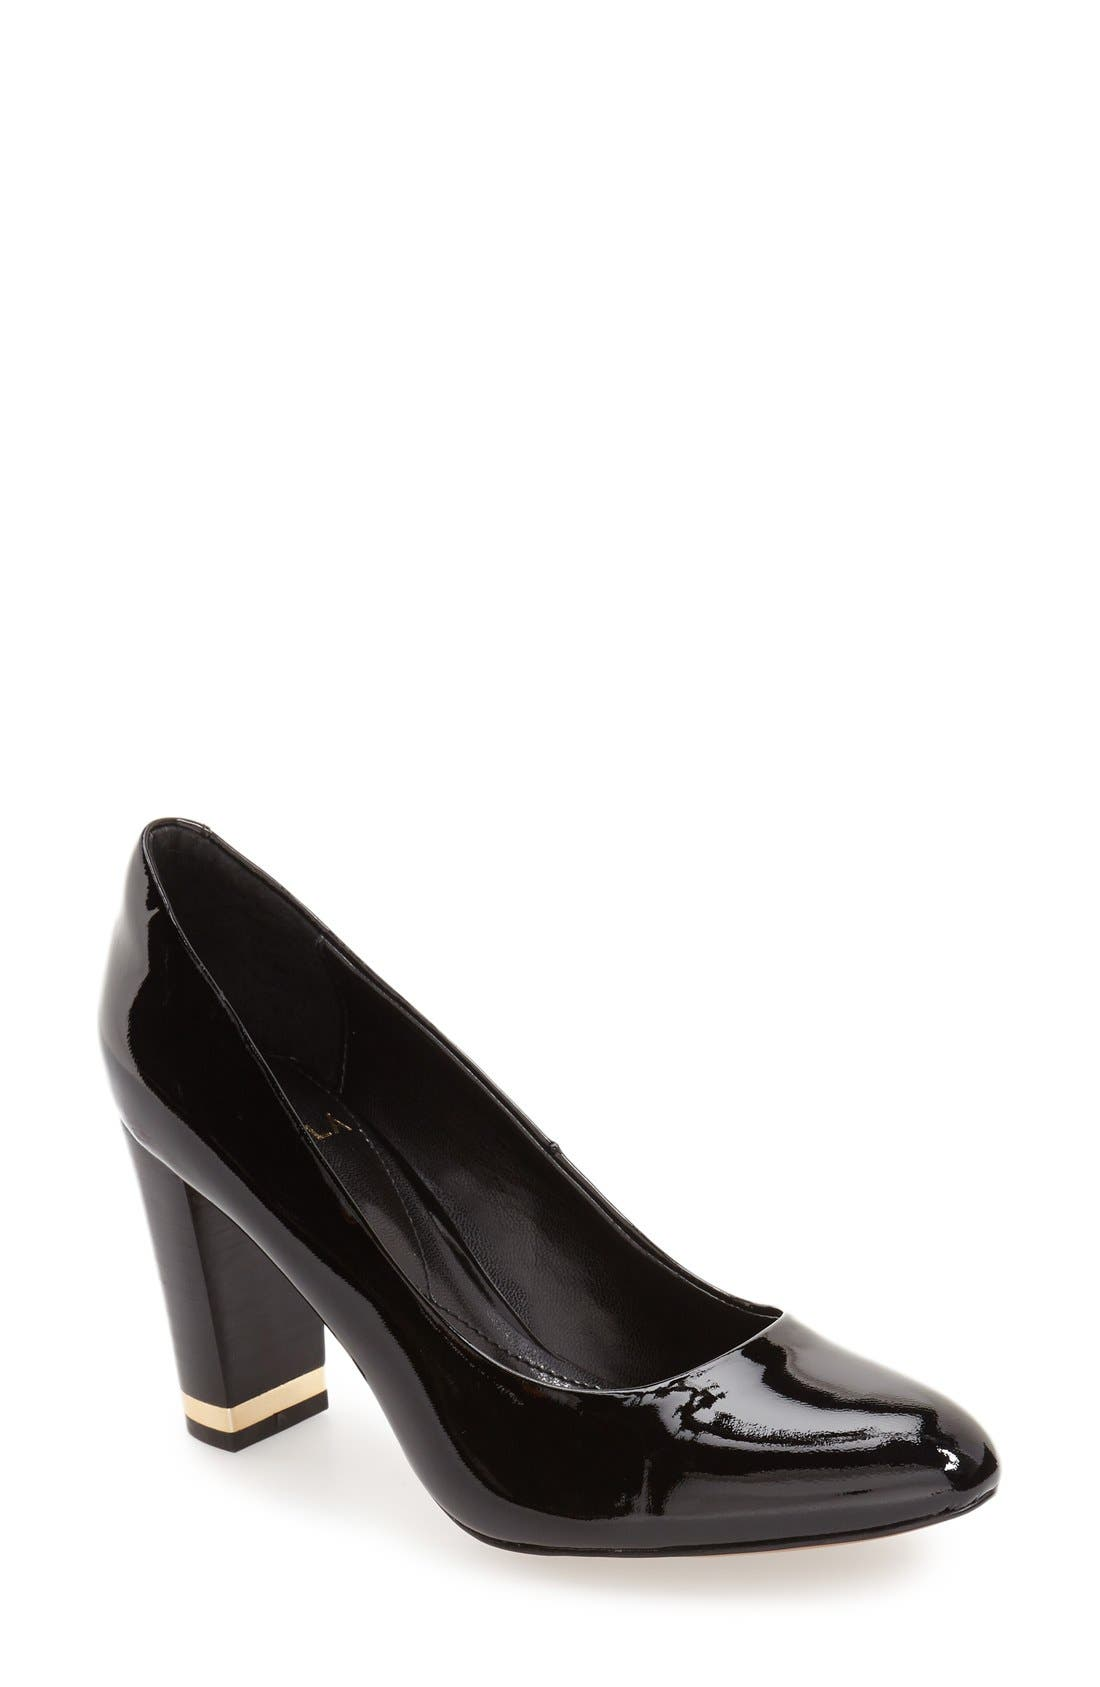 'Eleni II' Block Heel Pump,                             Main thumbnail 1, color,                             Black Patent